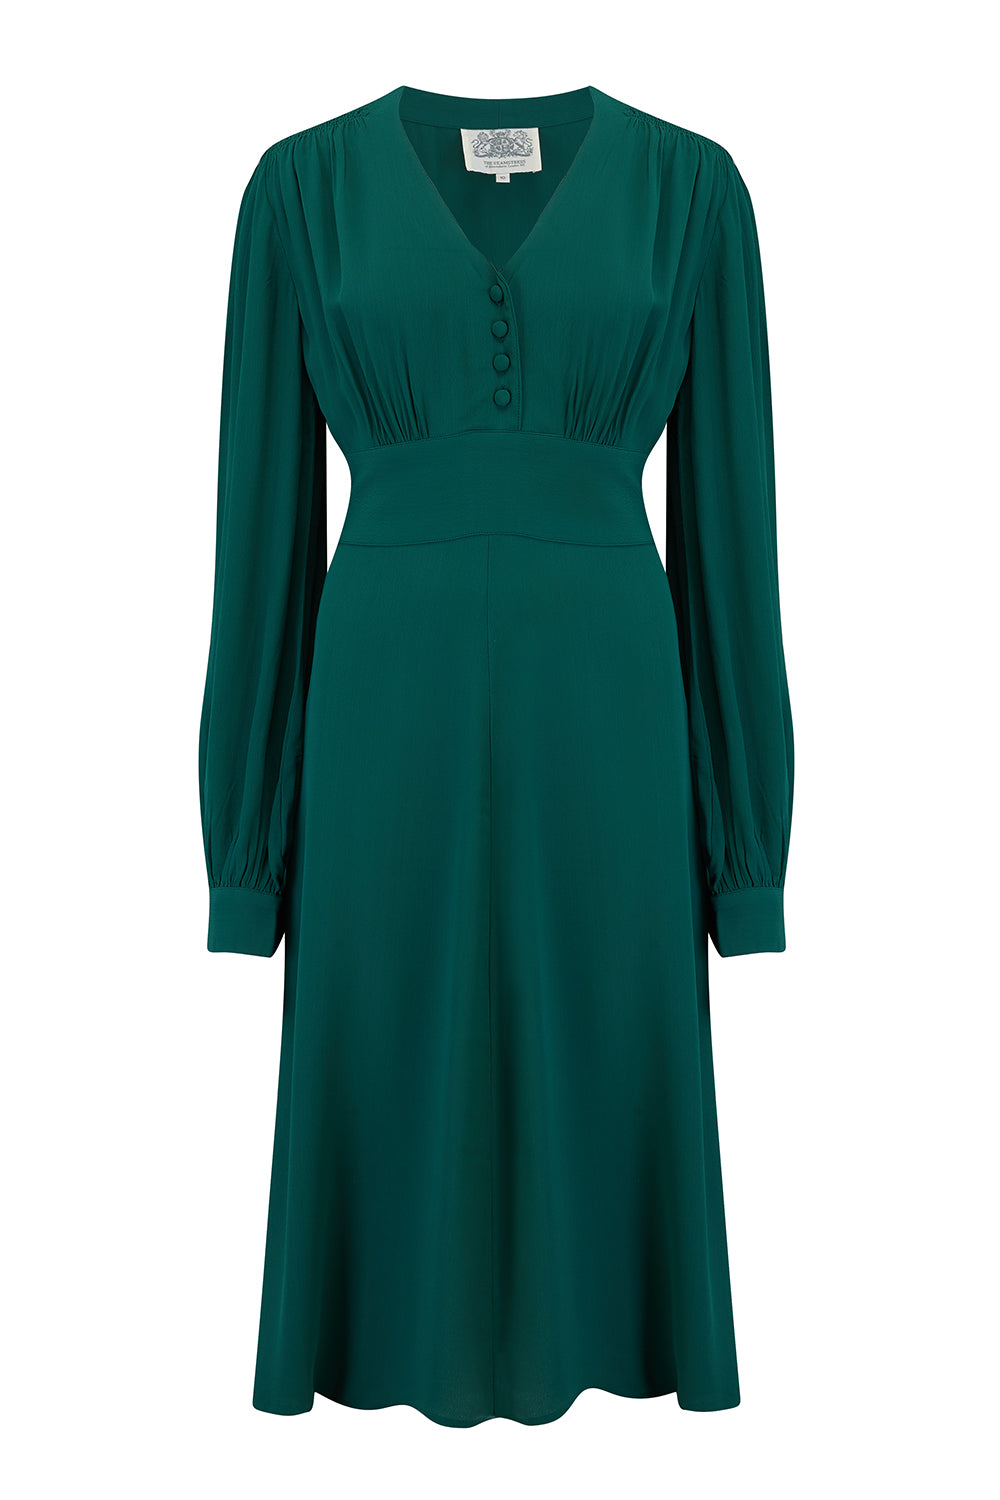 1930s Dresses | 30s Art Deco Dress Ava Dress in Vintage Green Classic 1940s Style Long Sleeve Dress £89.00 AT vintagedancer.com